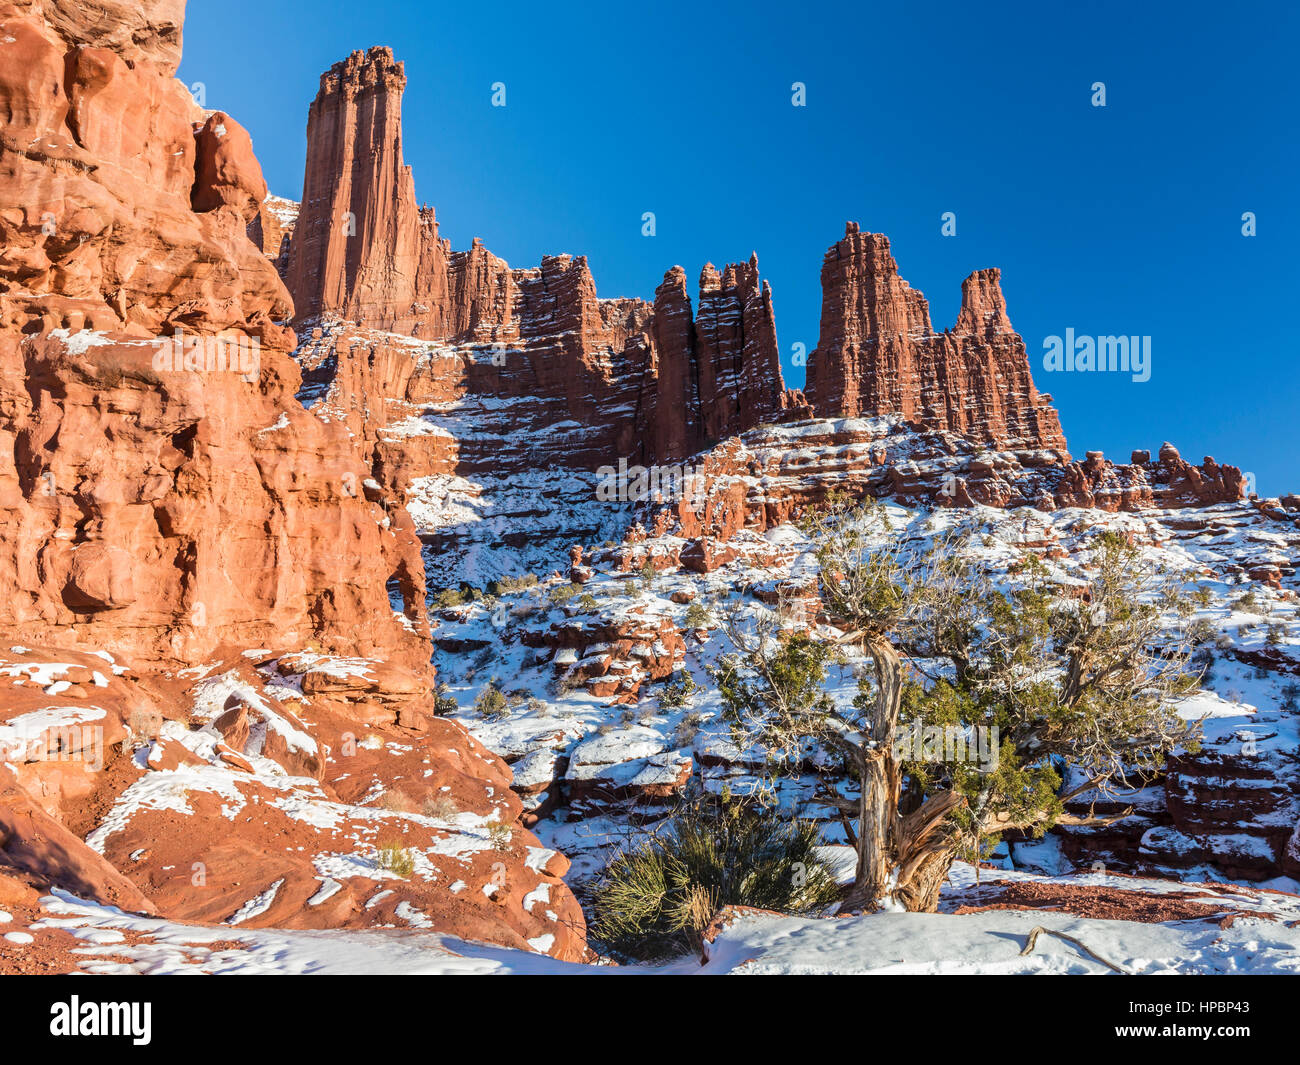 A juniper tree amid the Fisher Towers rock formations near Moab, Utah - Stock Image